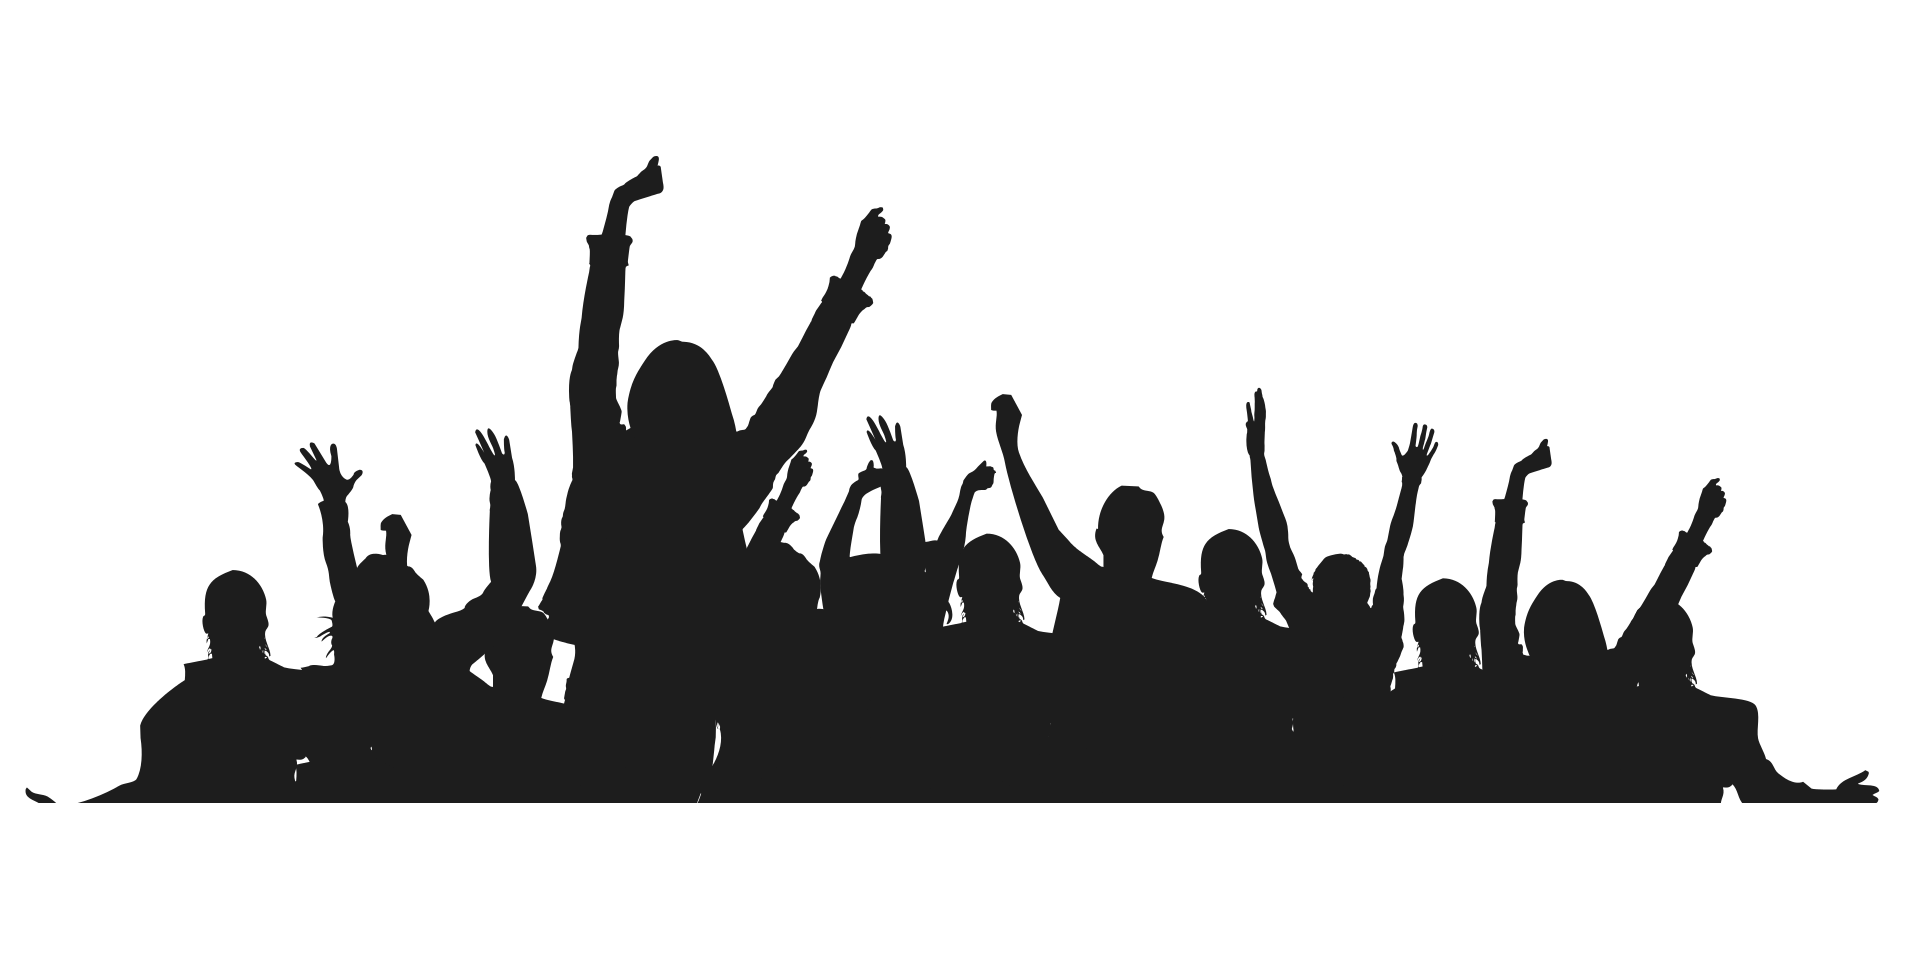 Hands in the air png. Image